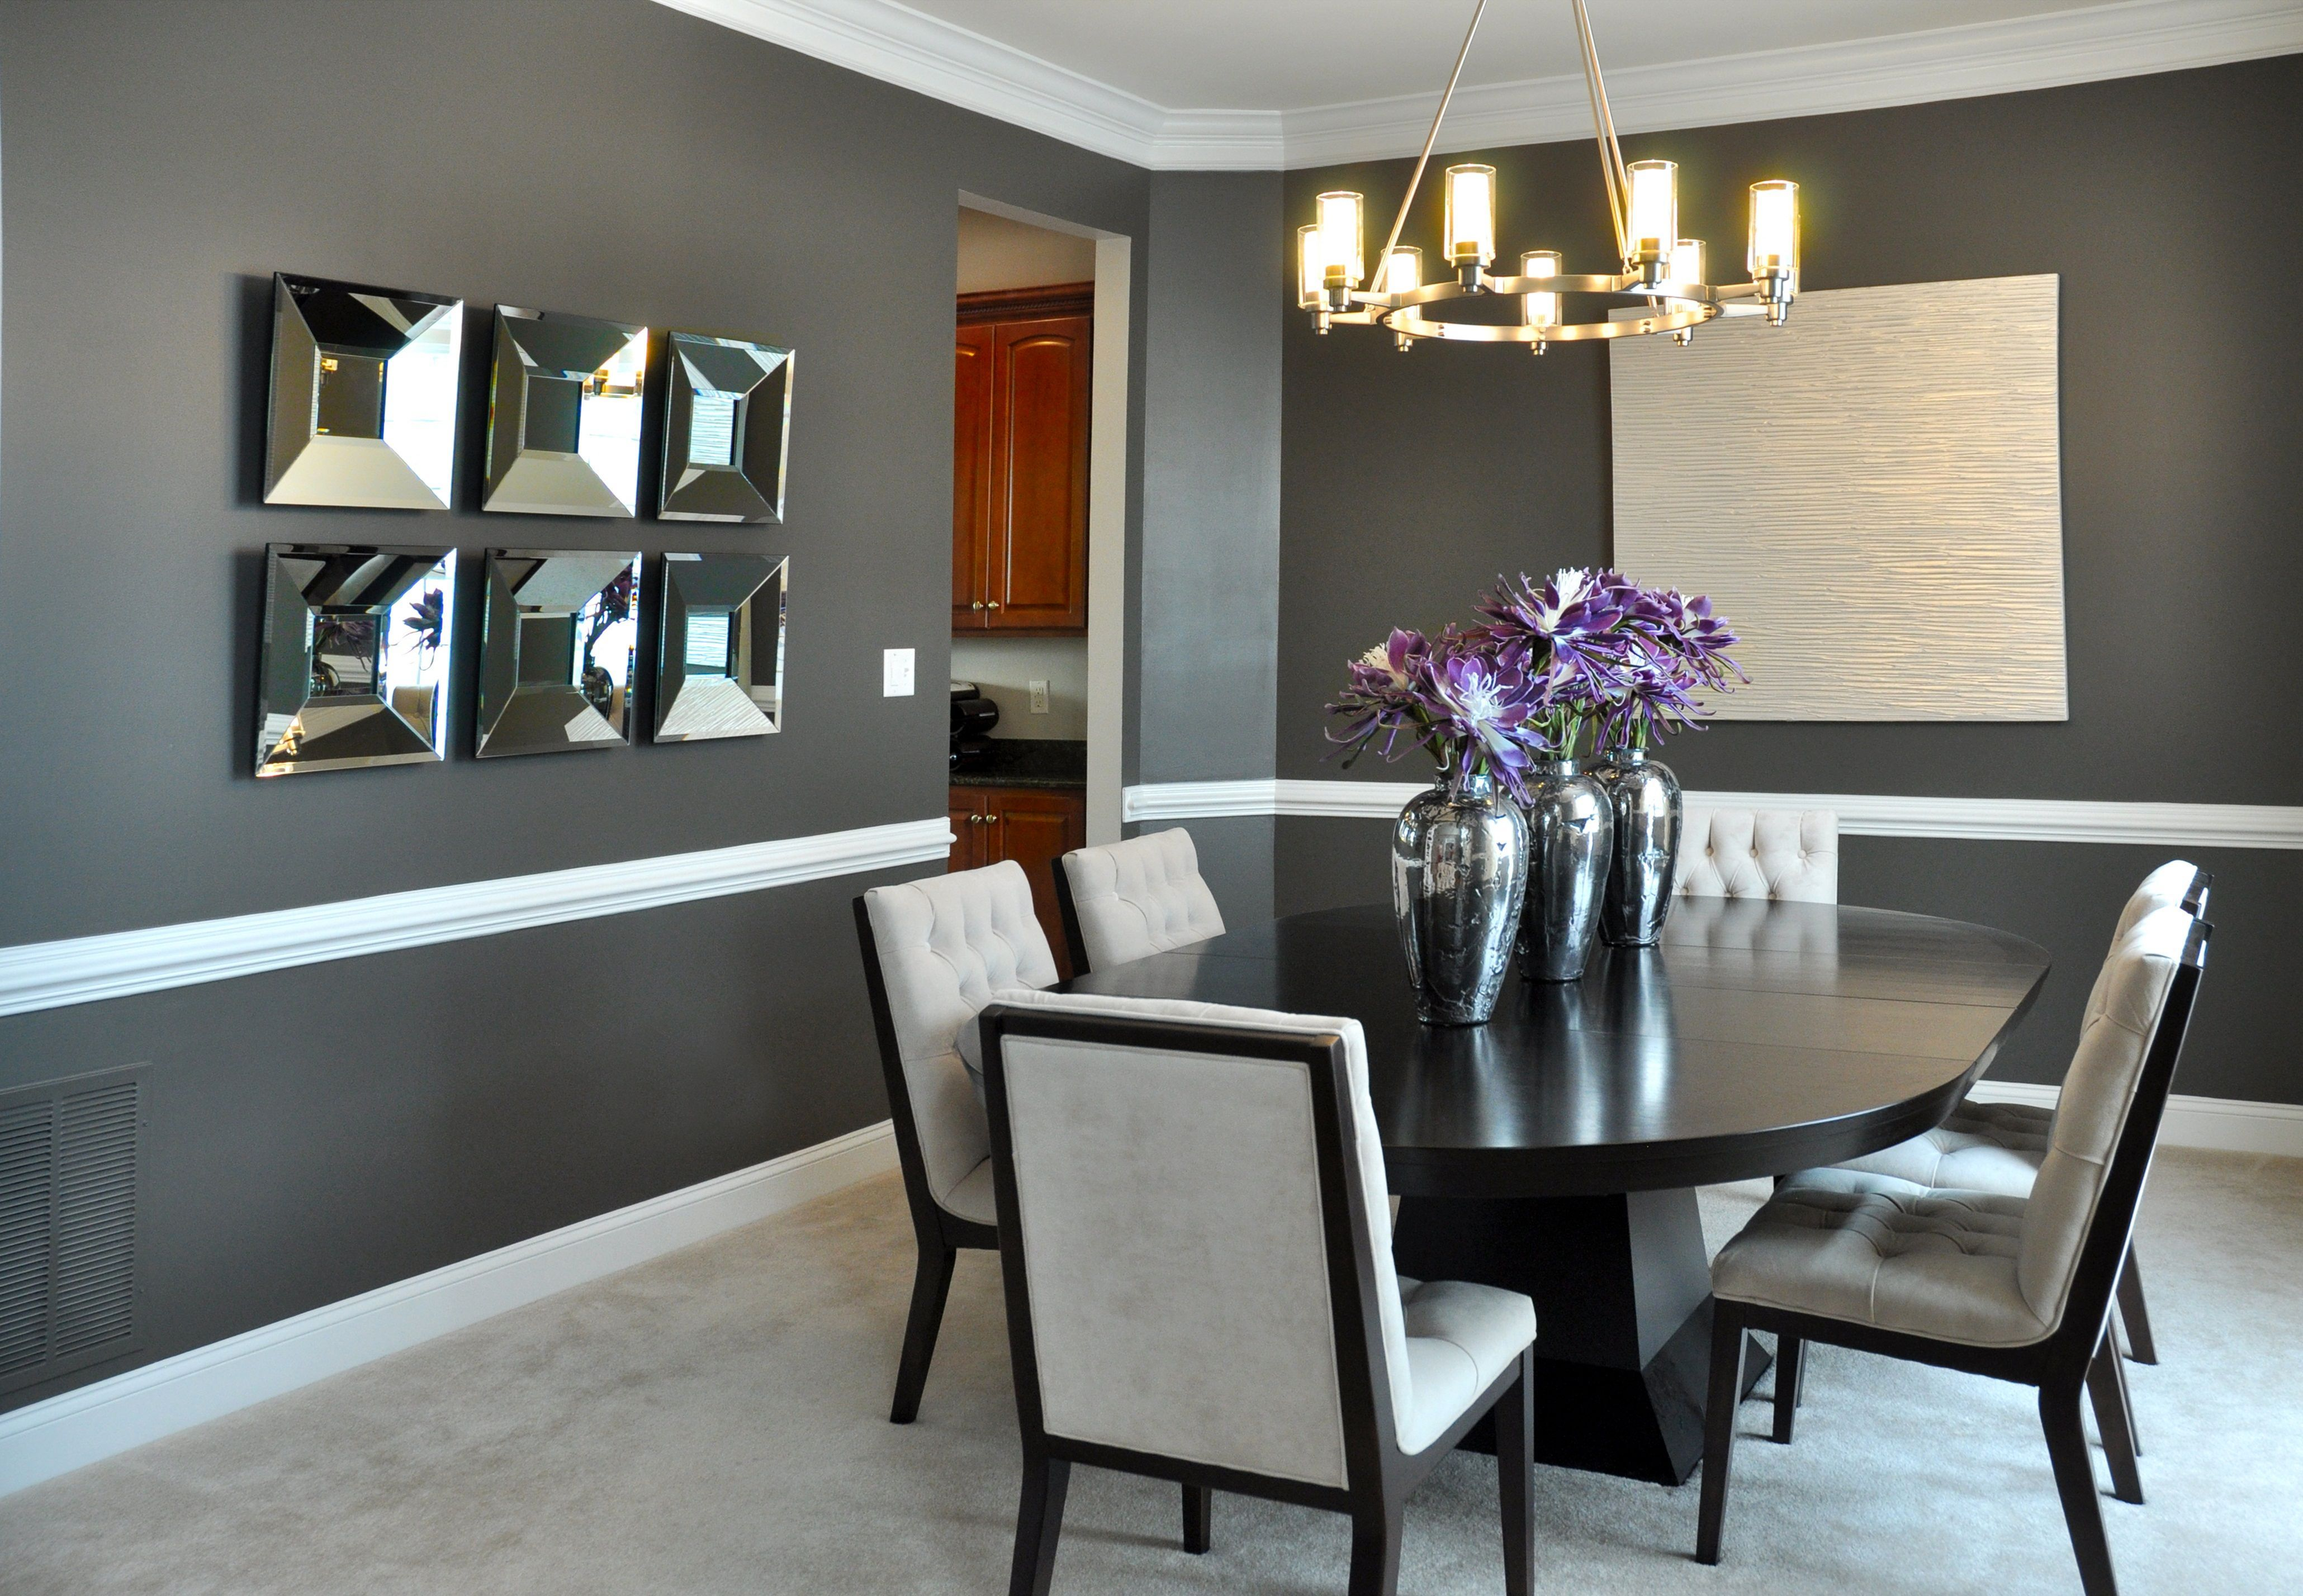 Make Your Dinner More Tasteful With 25 Top And Adorable Dining Room Decorations Decor It S Modern Dining Room Set Dining Room Colors Unique Dining Room